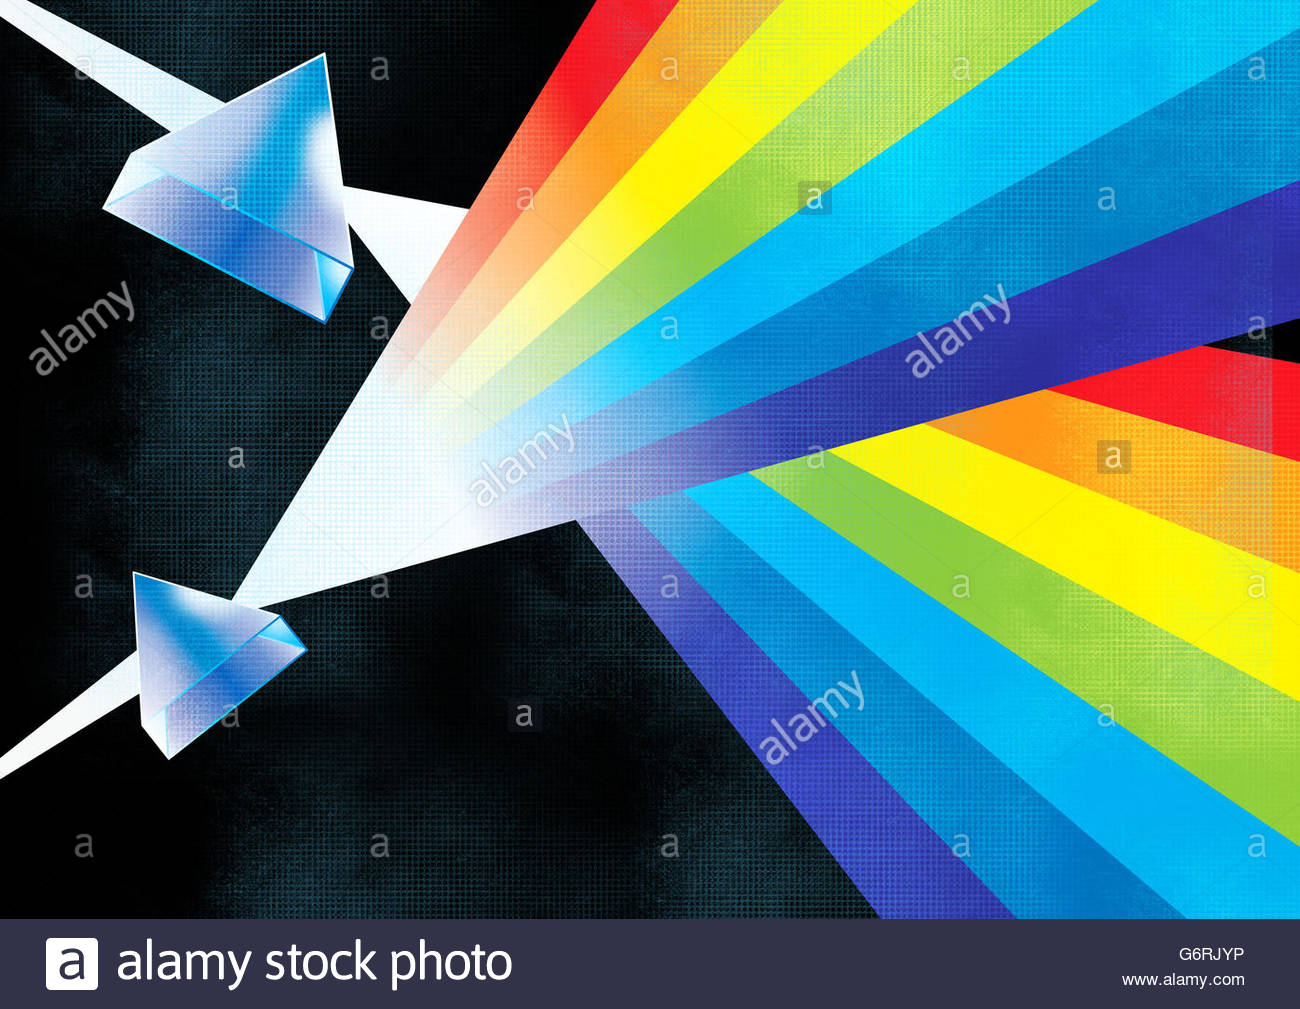 retro science illustration light spectrum prism lenses and sound waves - Stock Image